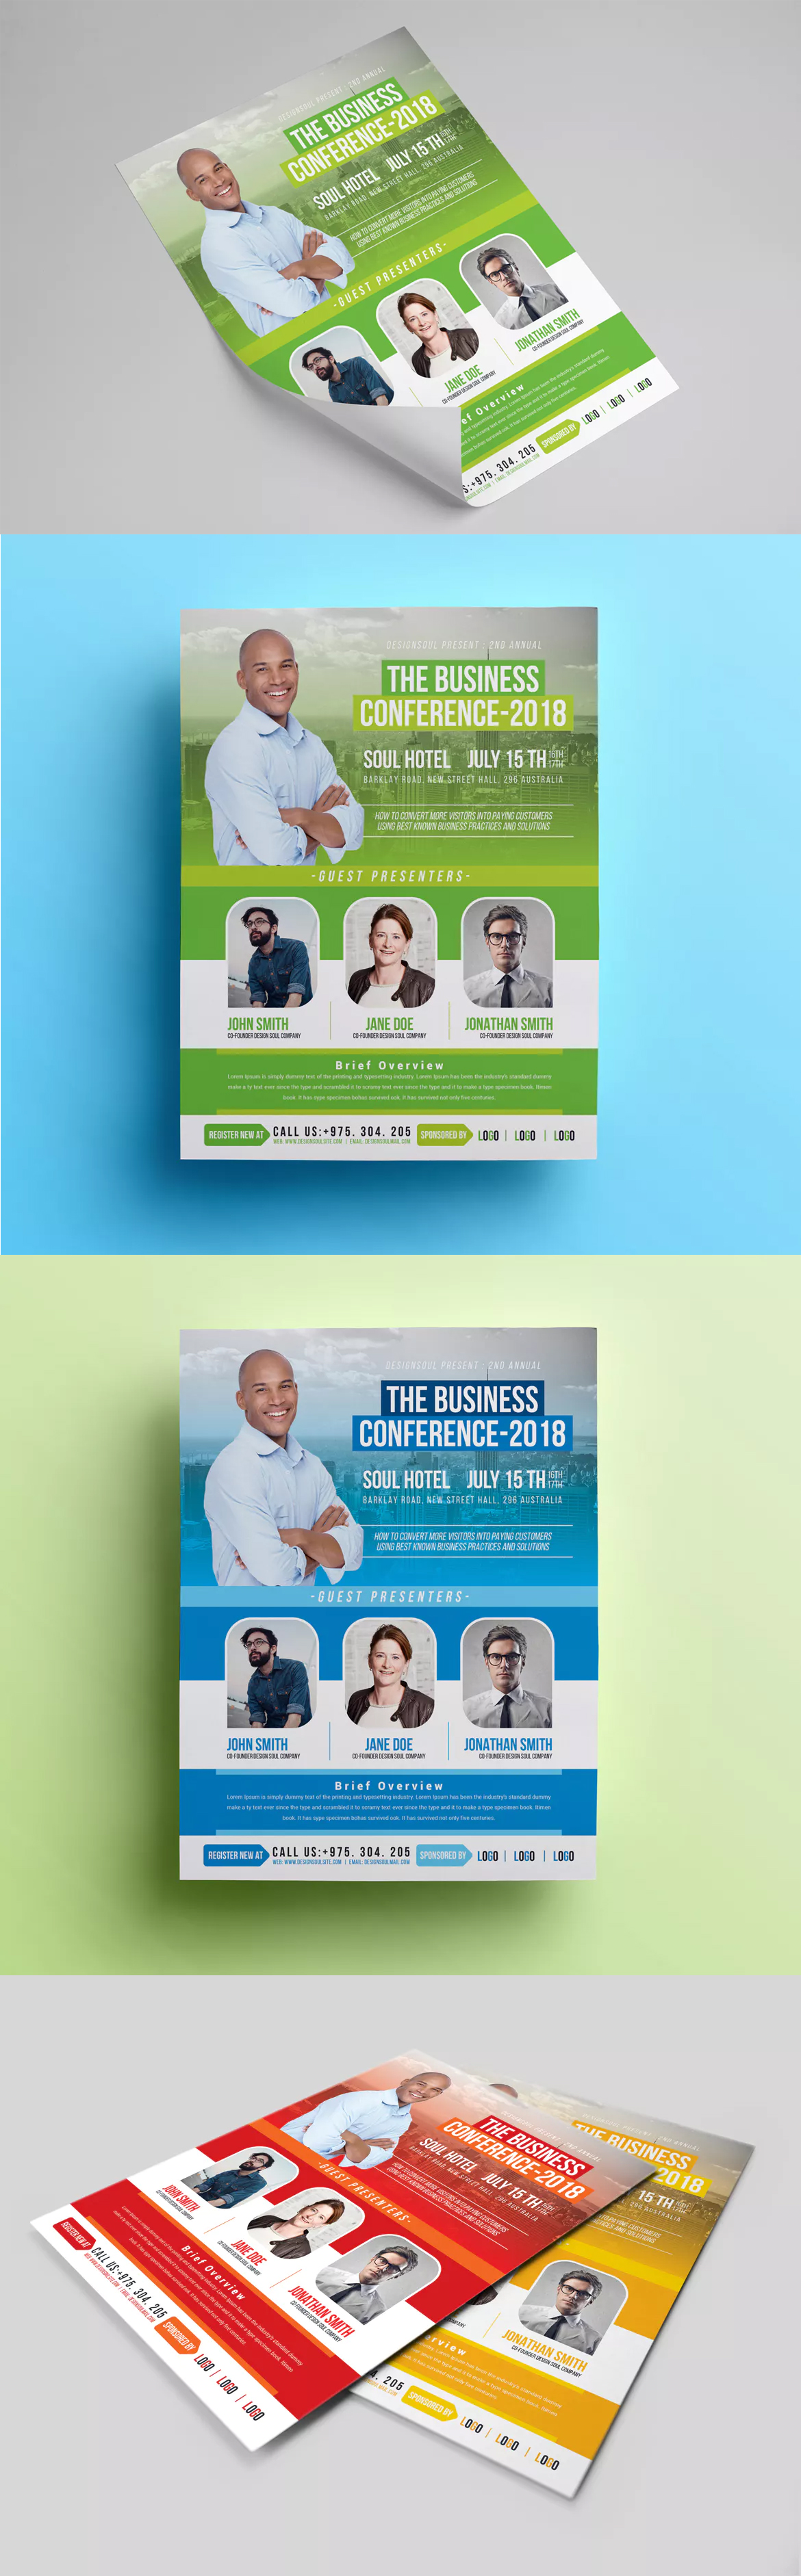 Business Conference Flyer Template Psd  Flyer Design Templates